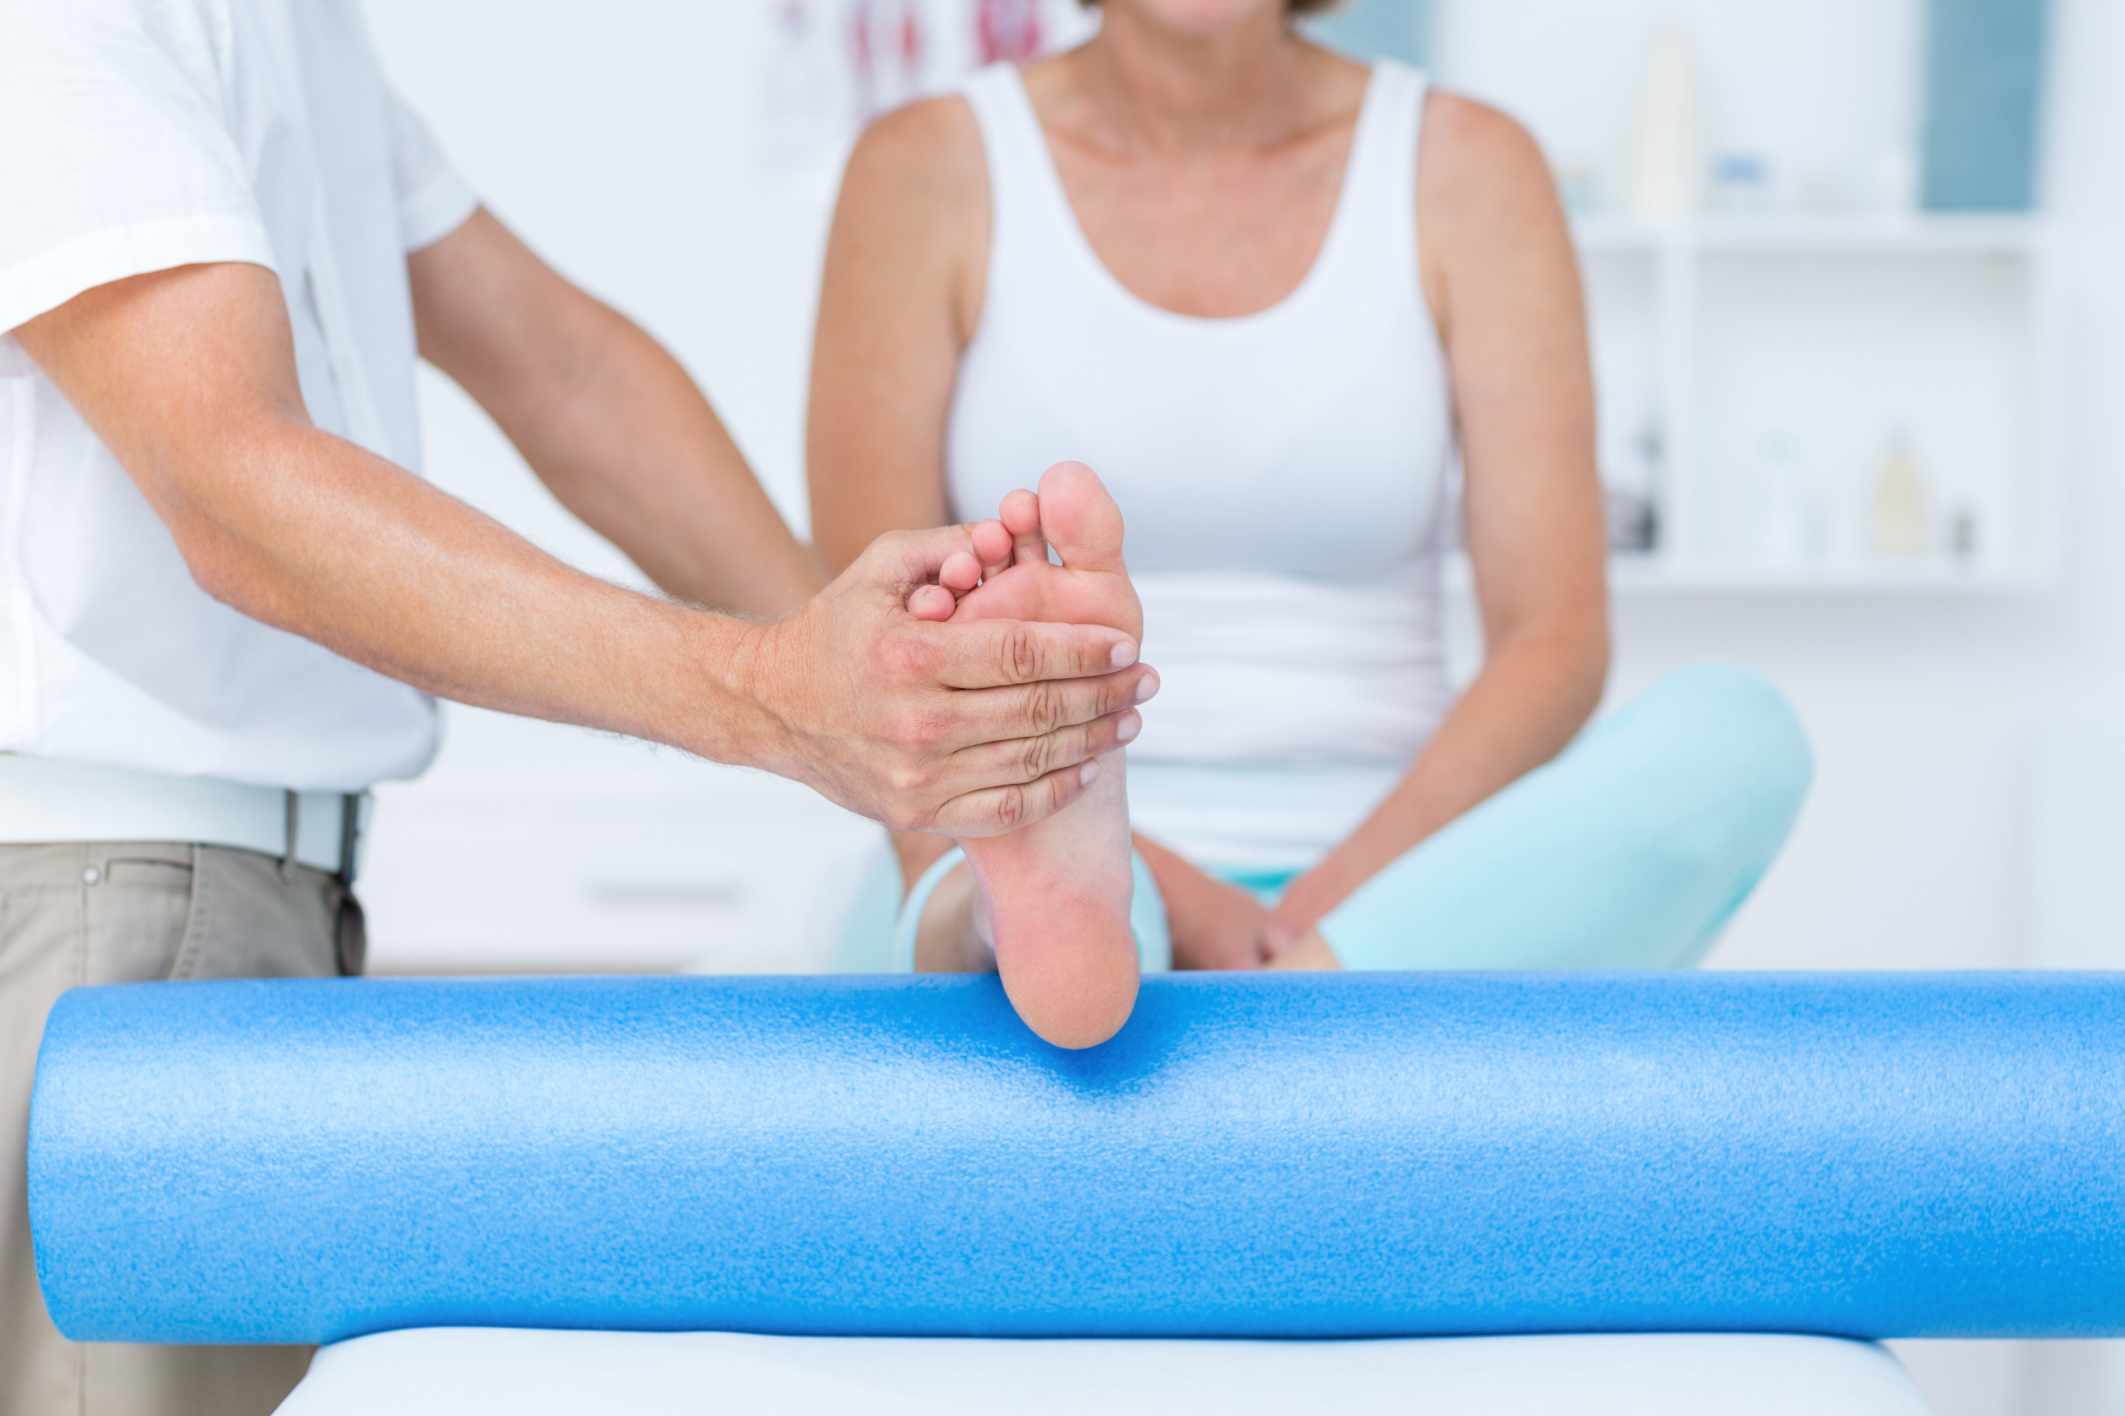 Article on physical therapy - Article On Physical Therapy 70